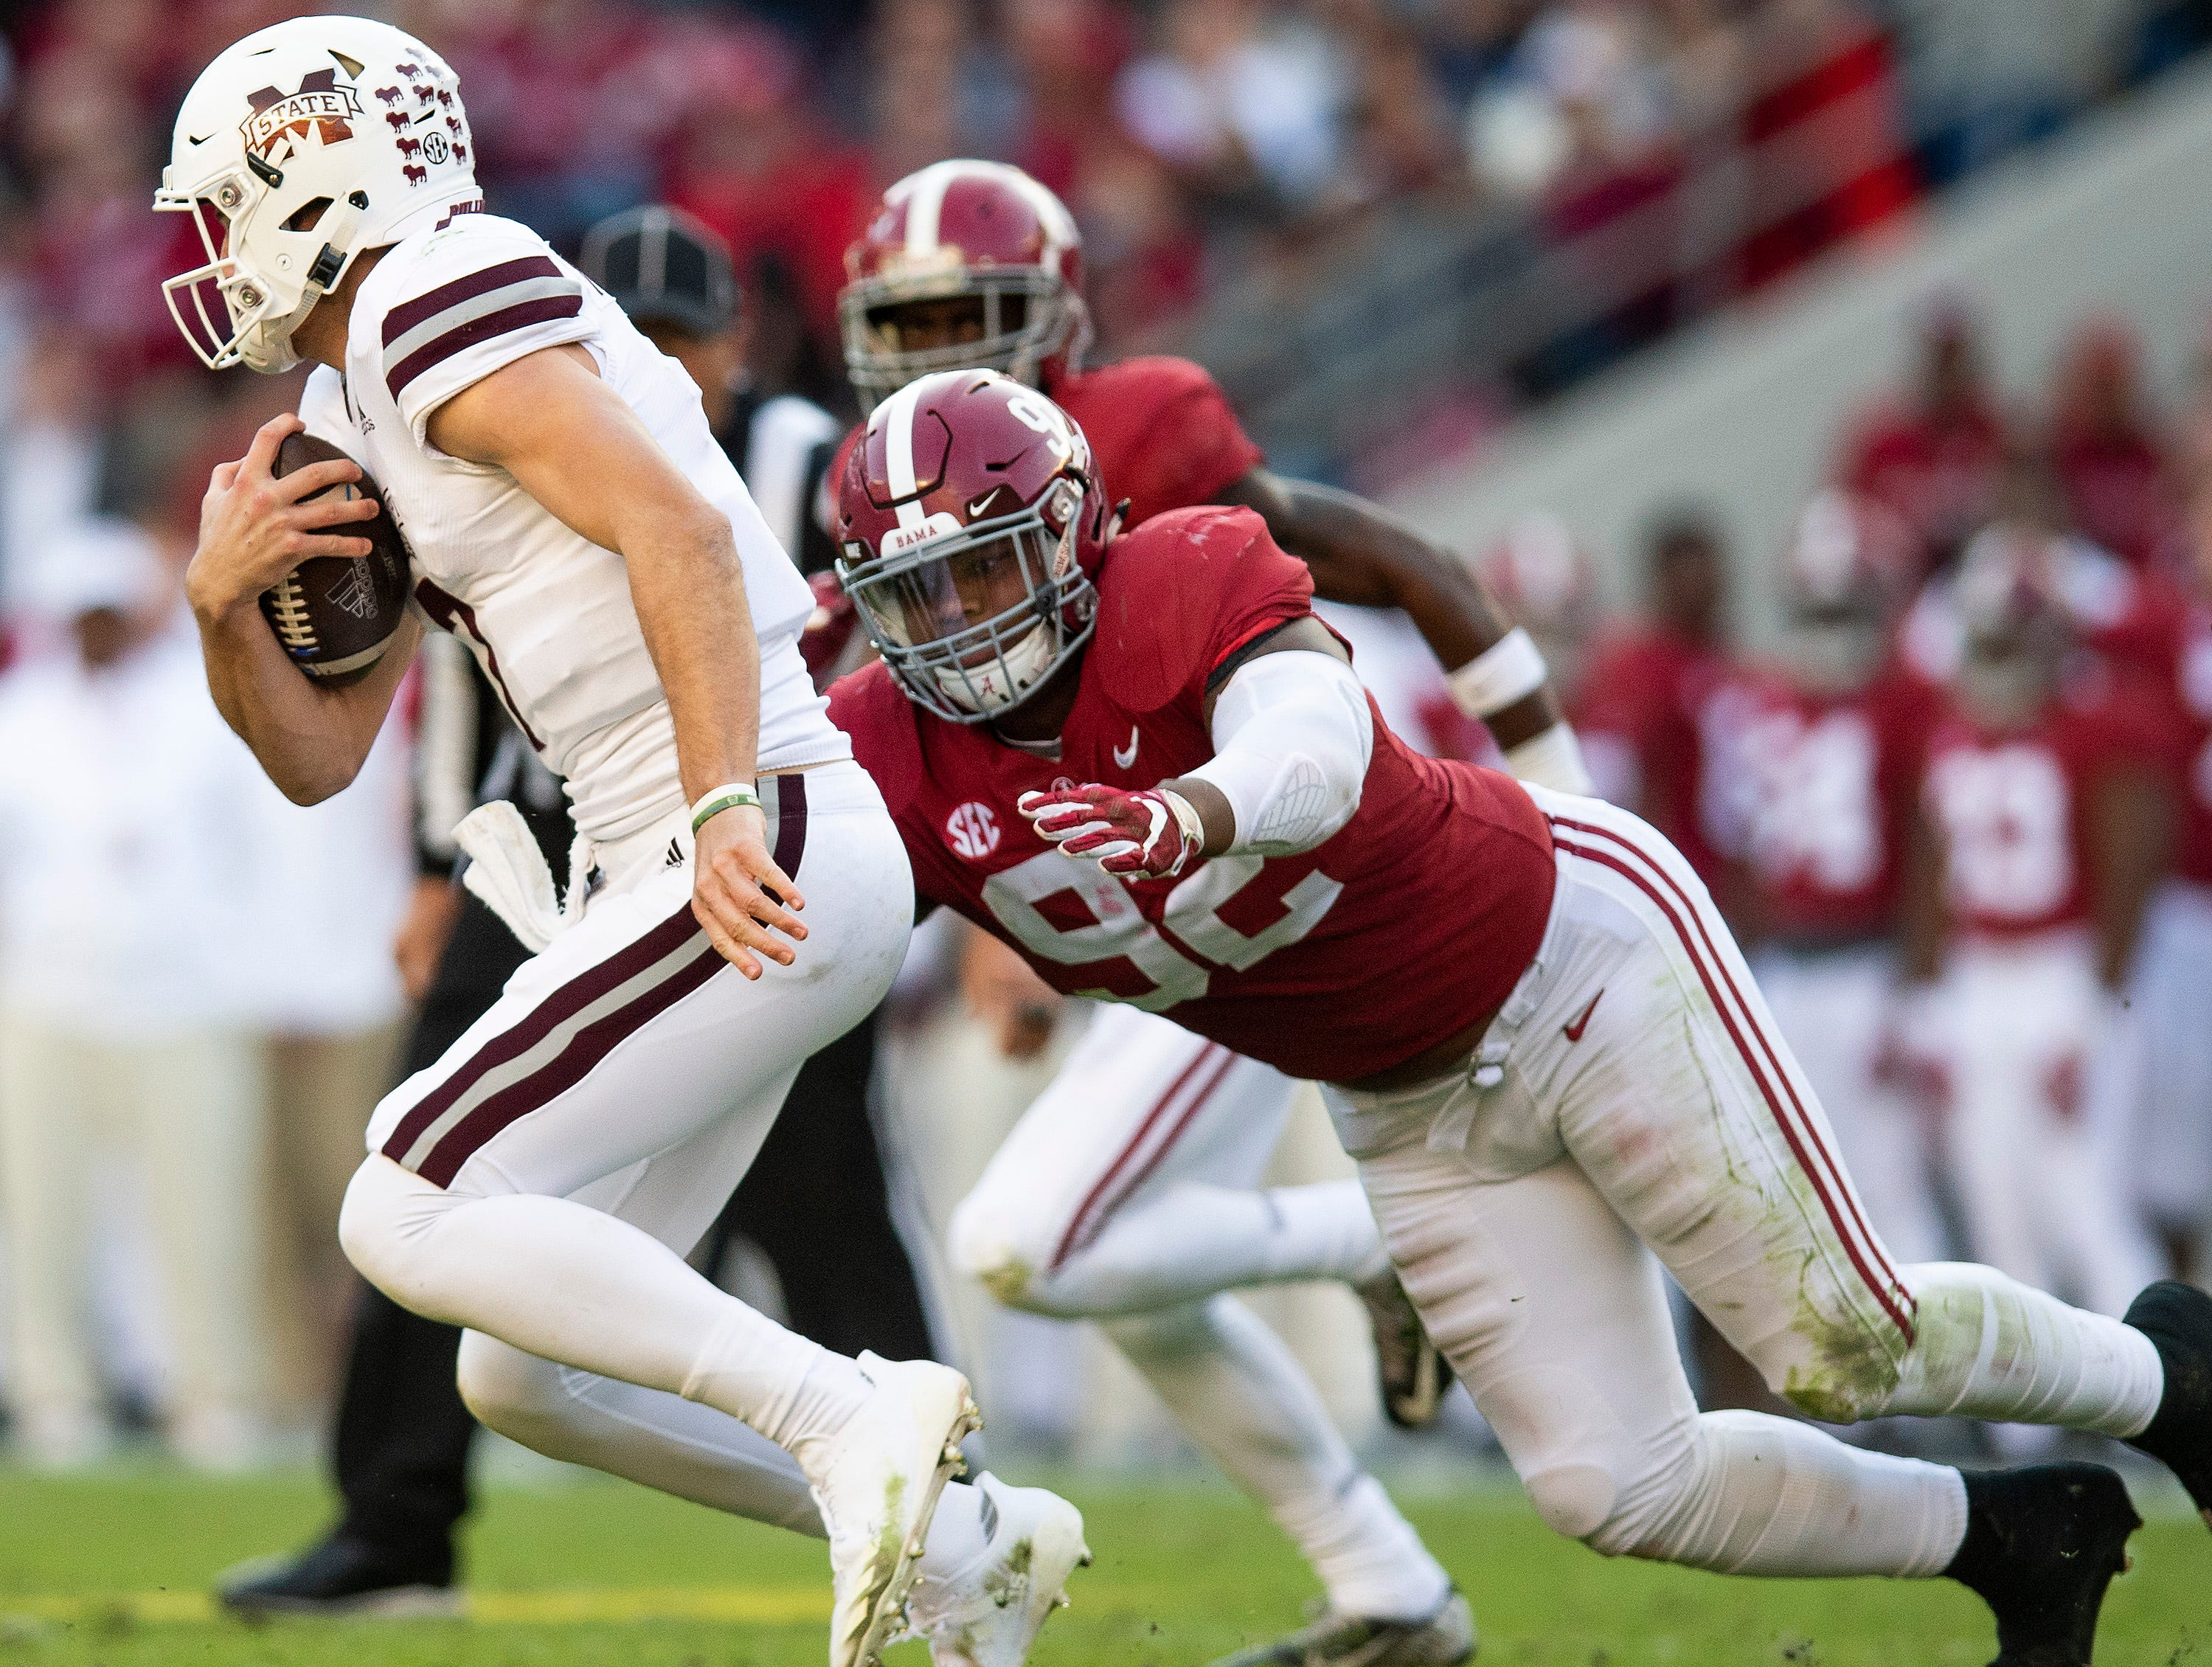 Alabama defensive lineman Quinnen Williams (92) tackles Mississippi State quarterback Nick Fitzgerald (7) in first half action at Bryant Denny Stadium in Tuscaloosa, Ala., on Saturday November 9, 2018.